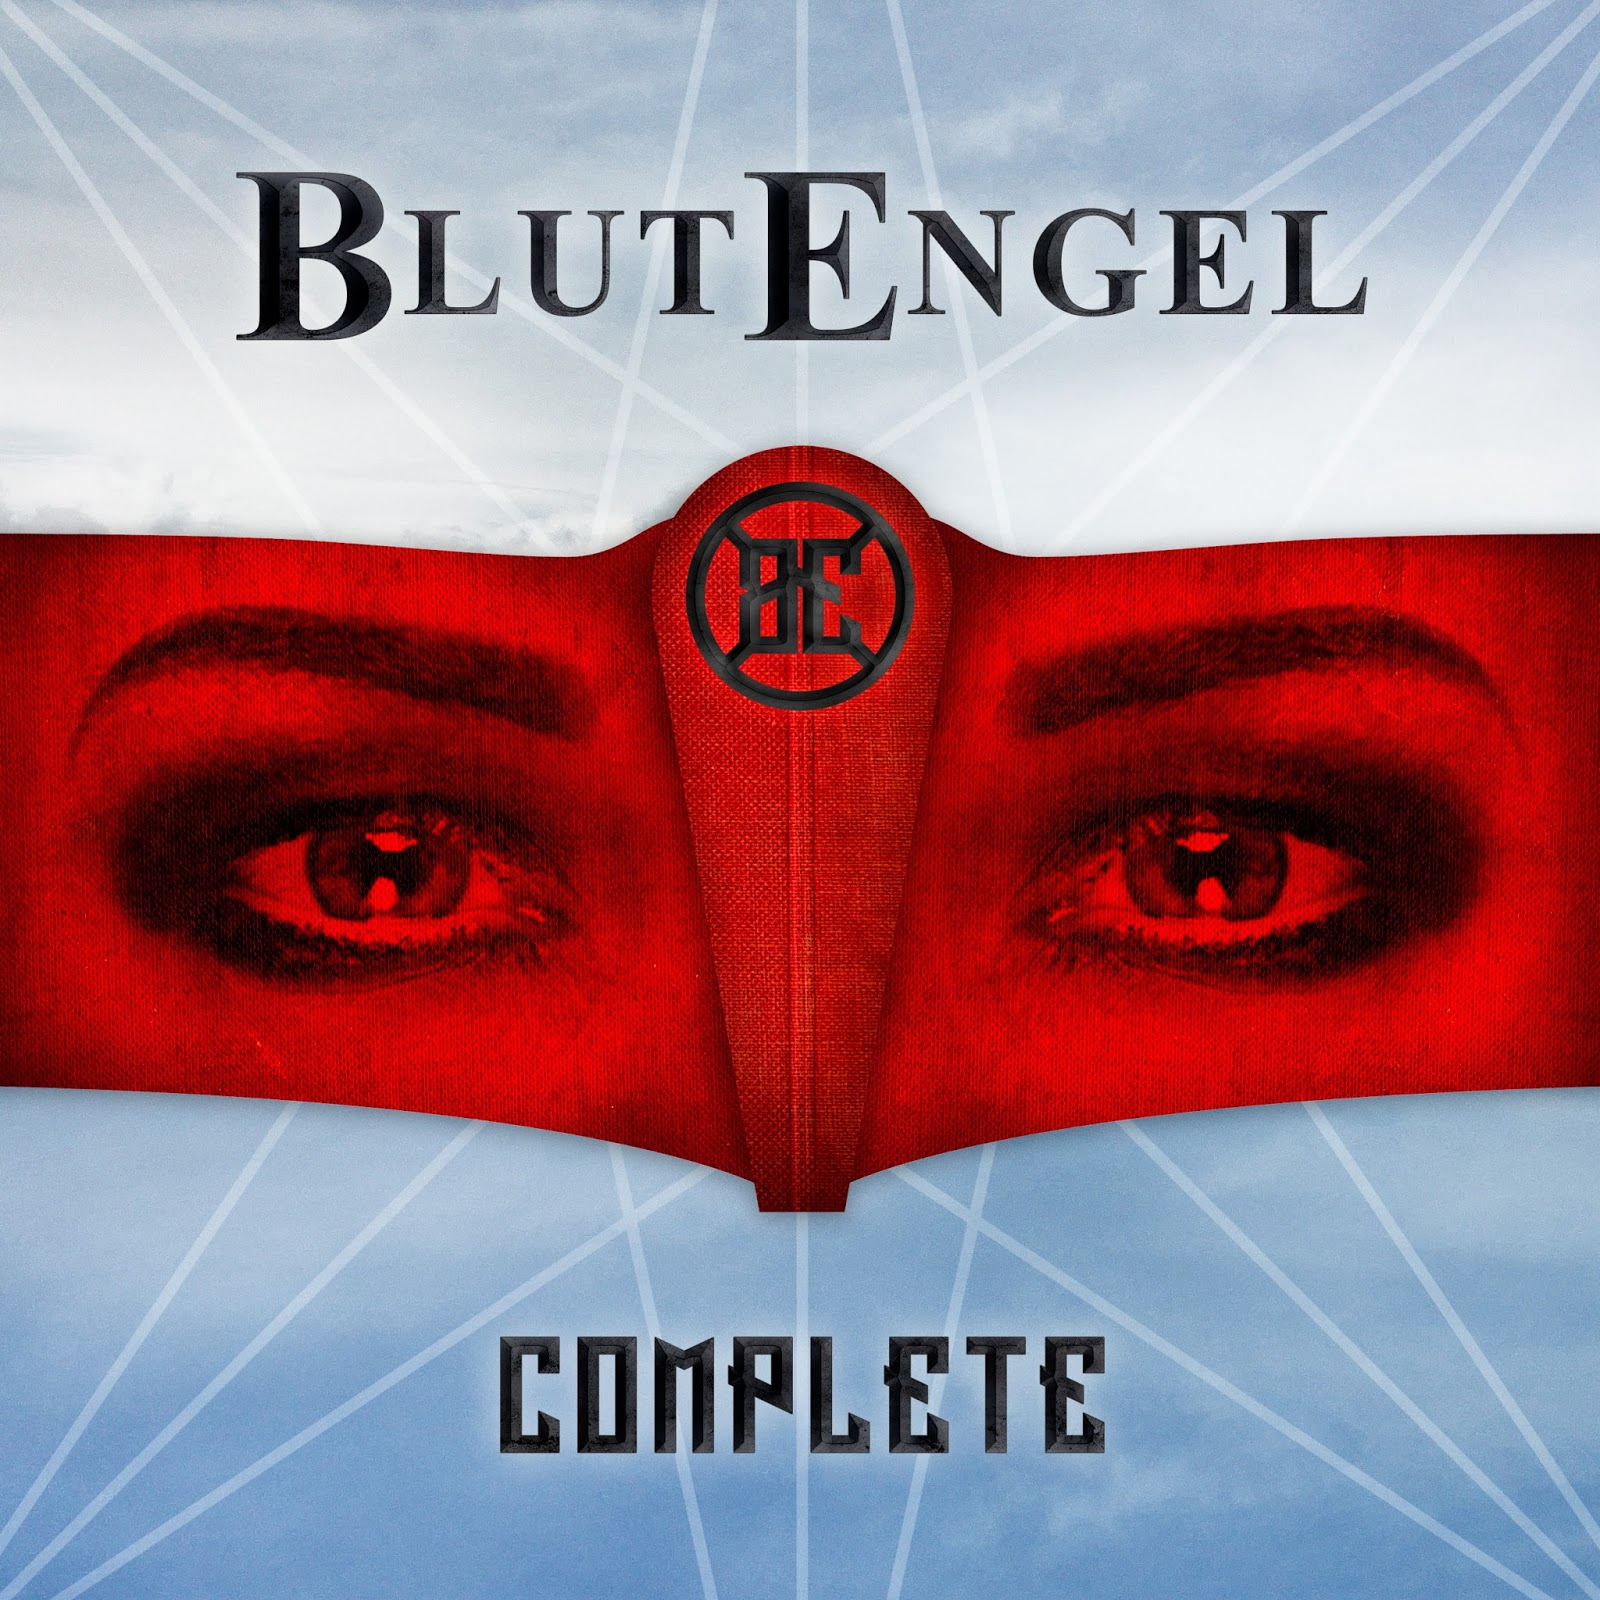 Review Blutengel Complete Intravenous Magazine Your Daily 282500 Wednesday 16 November 2016